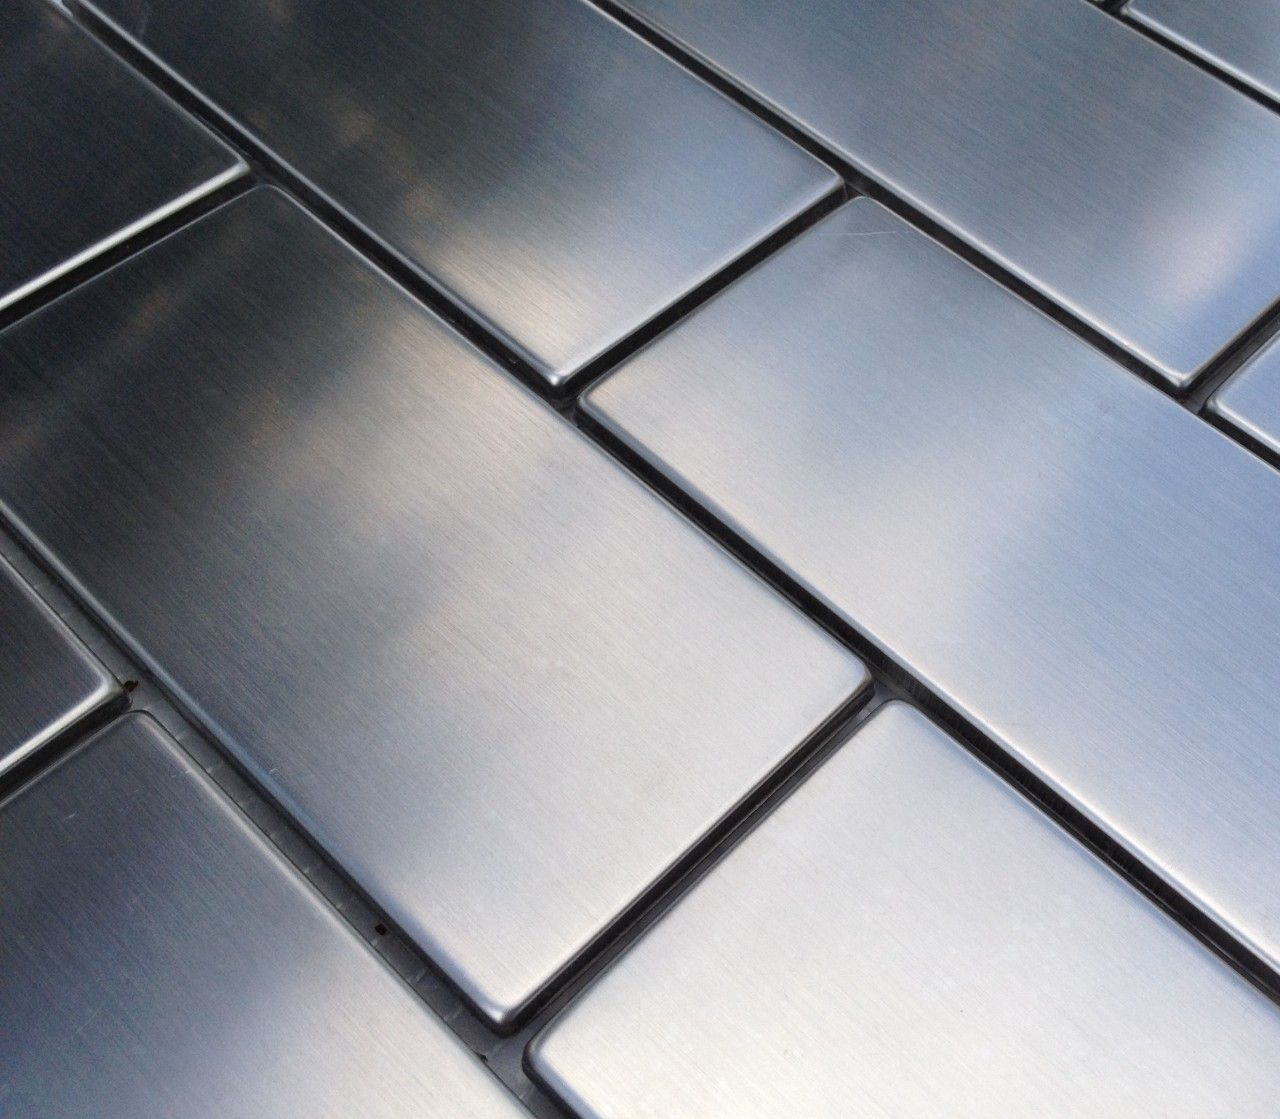 Stainless steel subway tile 2x4 kitchen upgrades kitchen stainless steel subway tile for interior application such as kitchen backsplash bathroom and featured wall each sheet measures and is thick dailygadgetfo Gallery